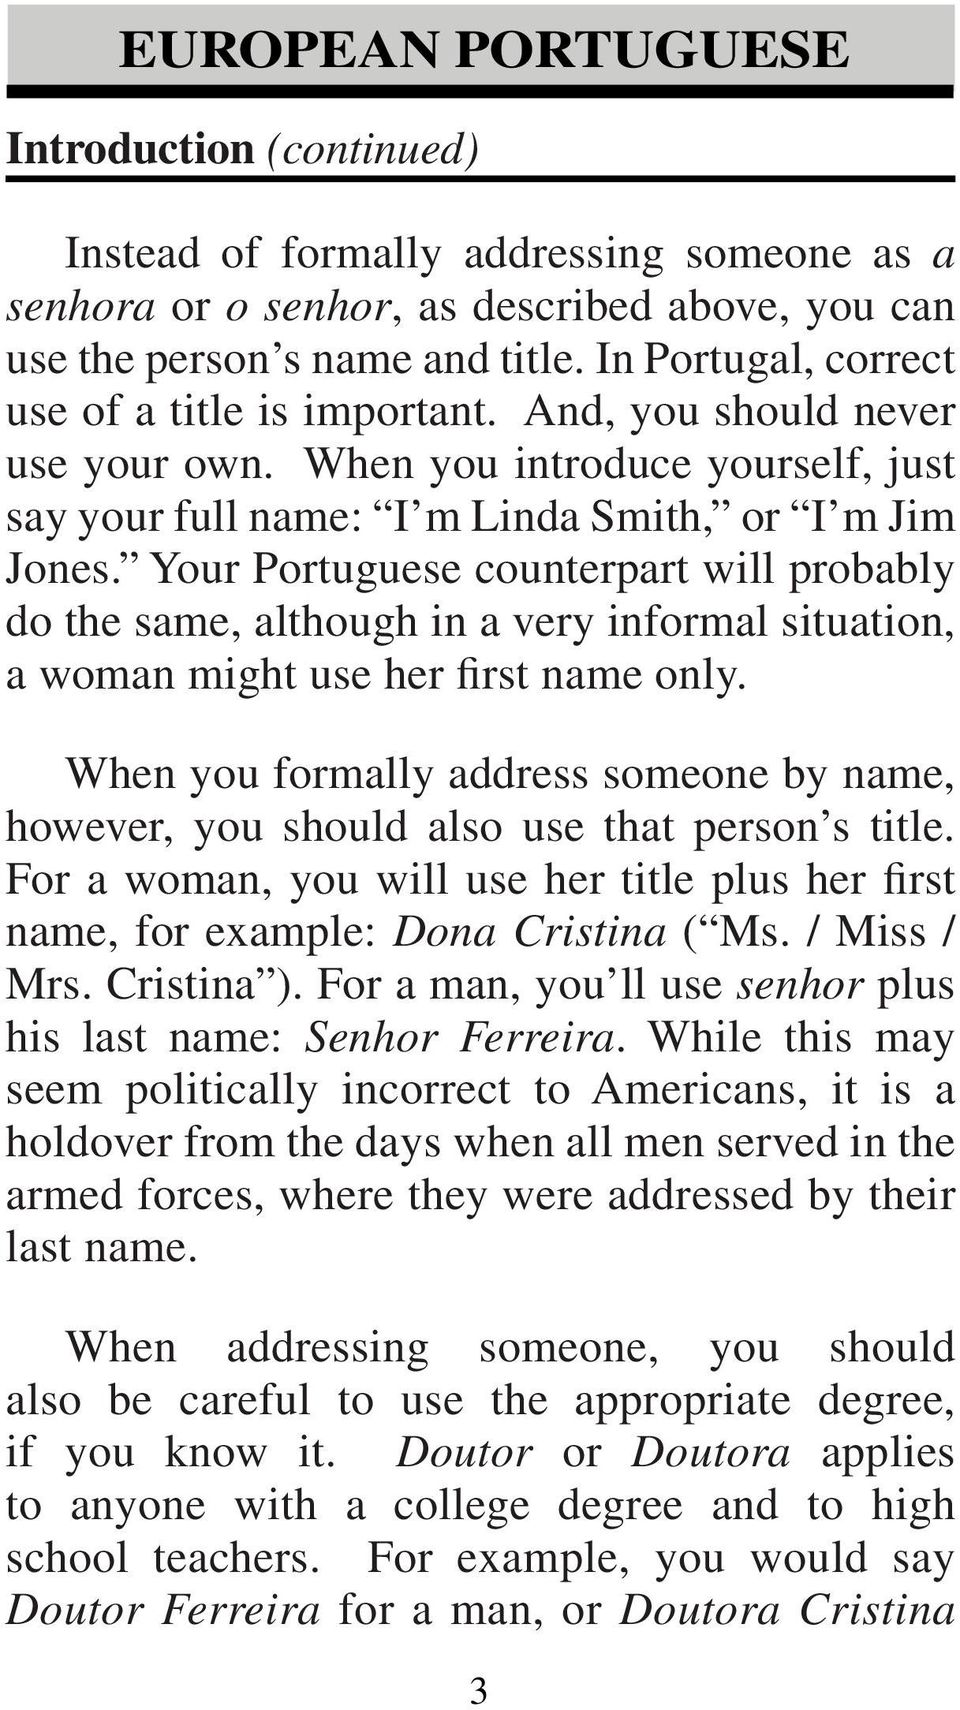 Your Portuguese counterpart will probably do the same, although in a very informal situation, a woman might use her first name only.